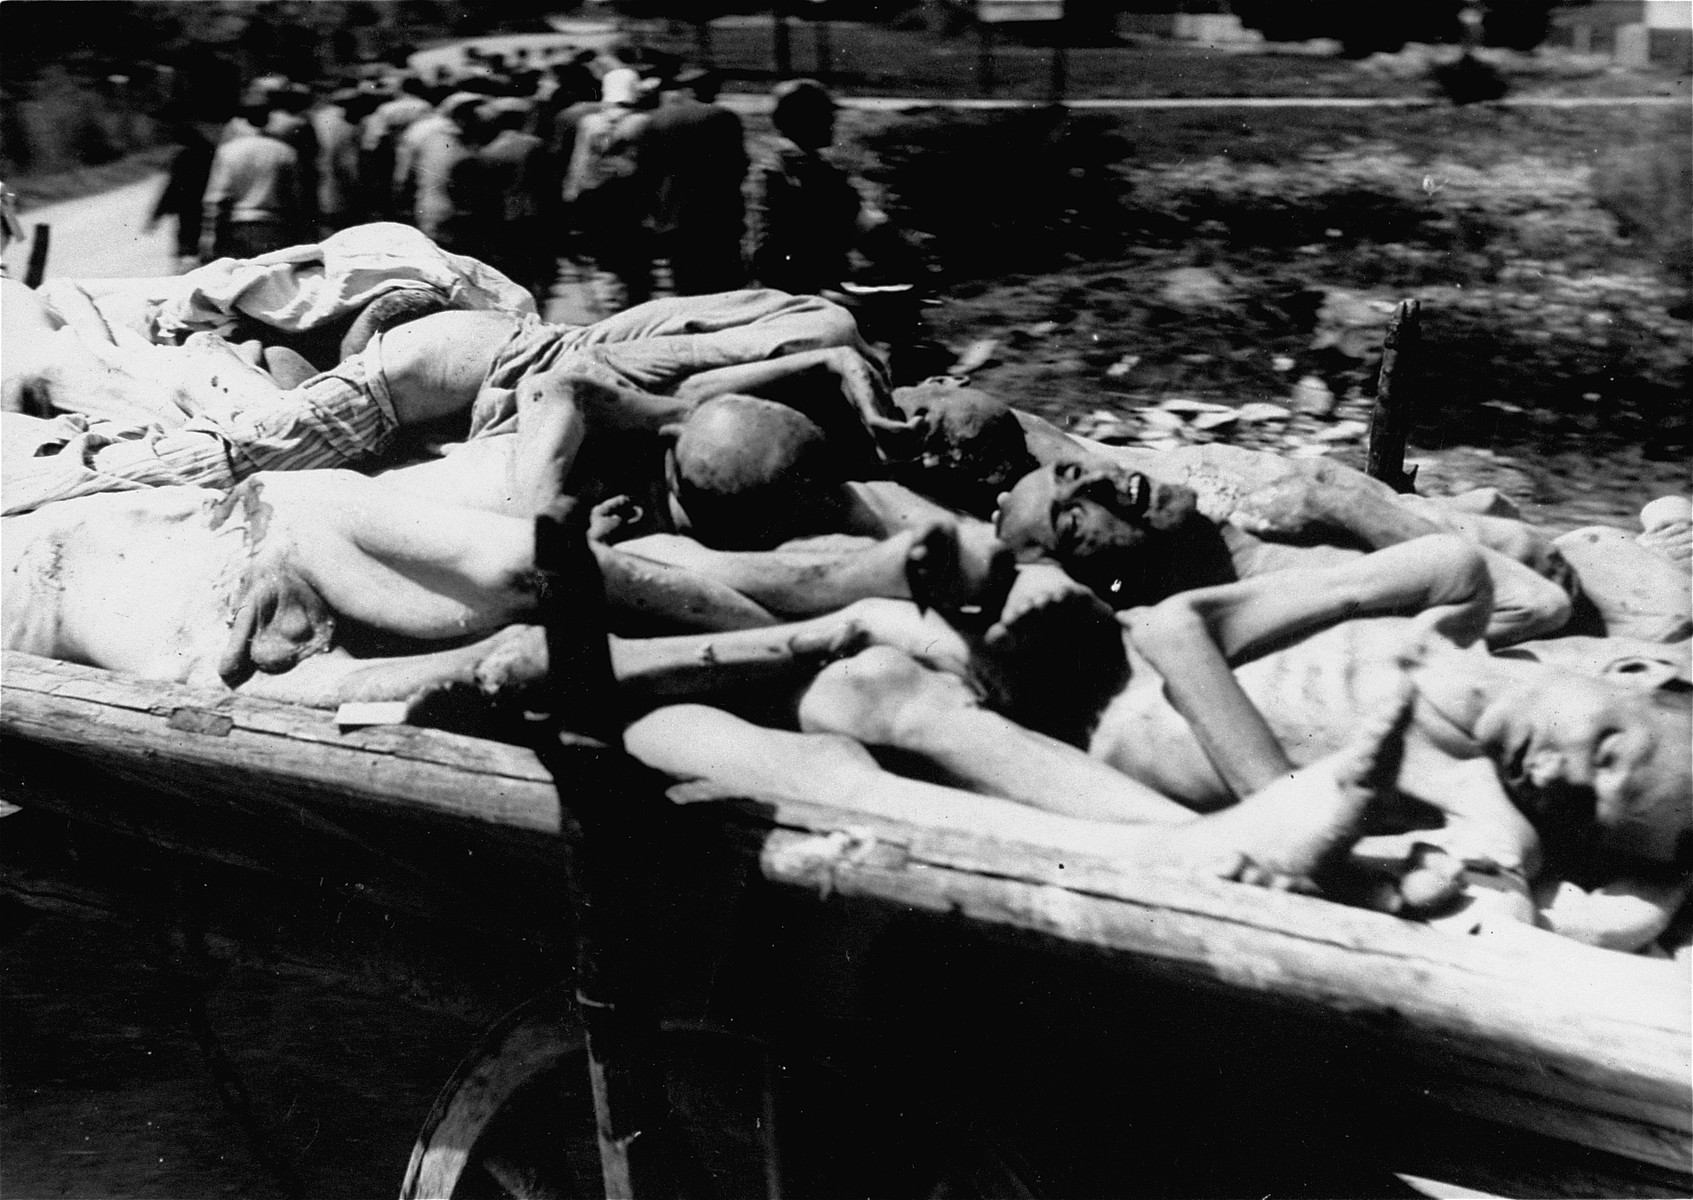 Corpses from the Dachau concentration camp on route to burial in a cart levied from local farmers.  Allied authorities required local farmers to drive their loaded carts through the town of Dachau as an education for the inhabitants.